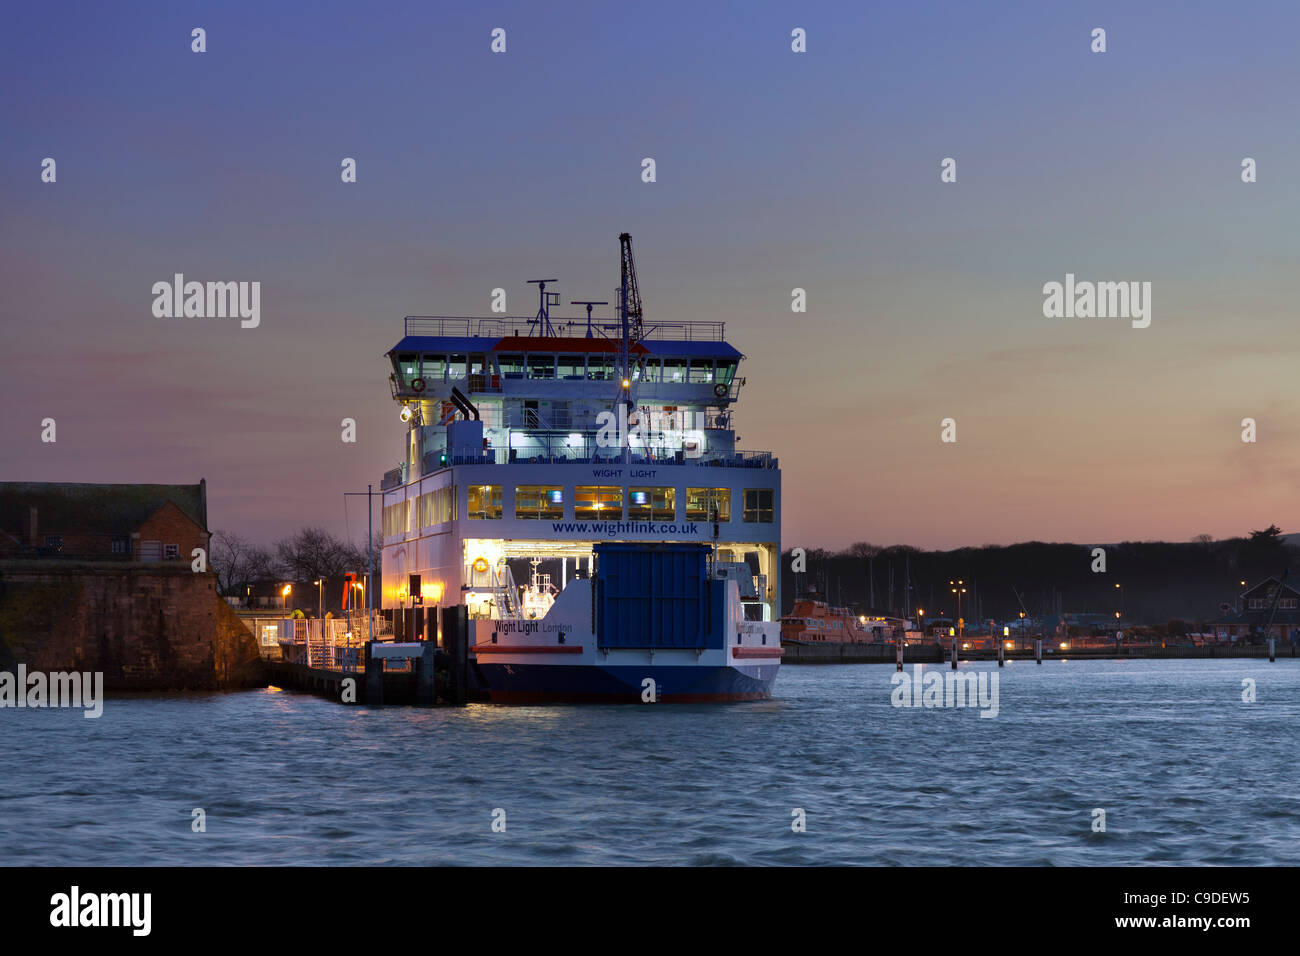 Solent Ferry Isle of Wight Yarmouth Lymington route at Dusk at entrance to harbour - Stock Image